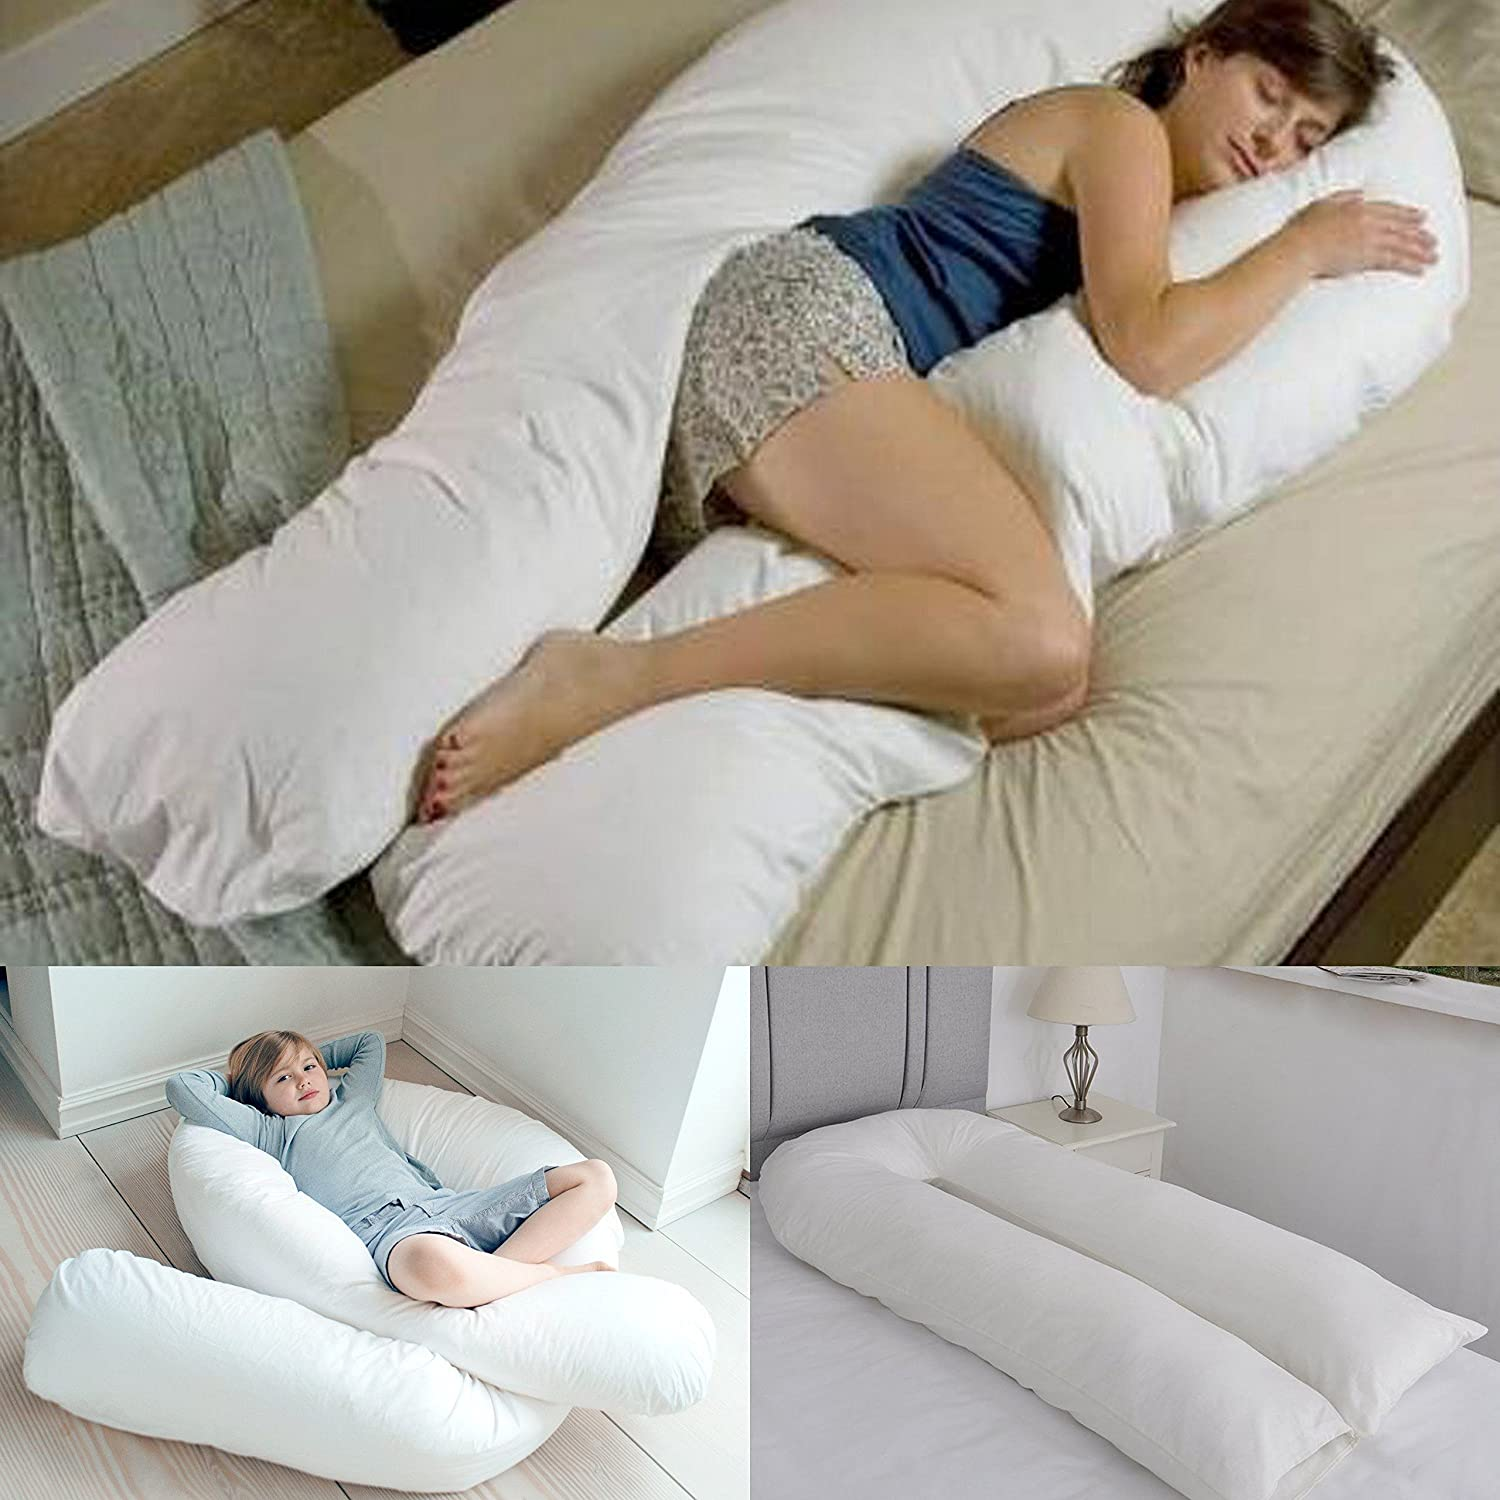 Bedding Home 12 FT Long C/_U Shaped Full Body Cuddly /& Maternity Pregnancy Support Pillow